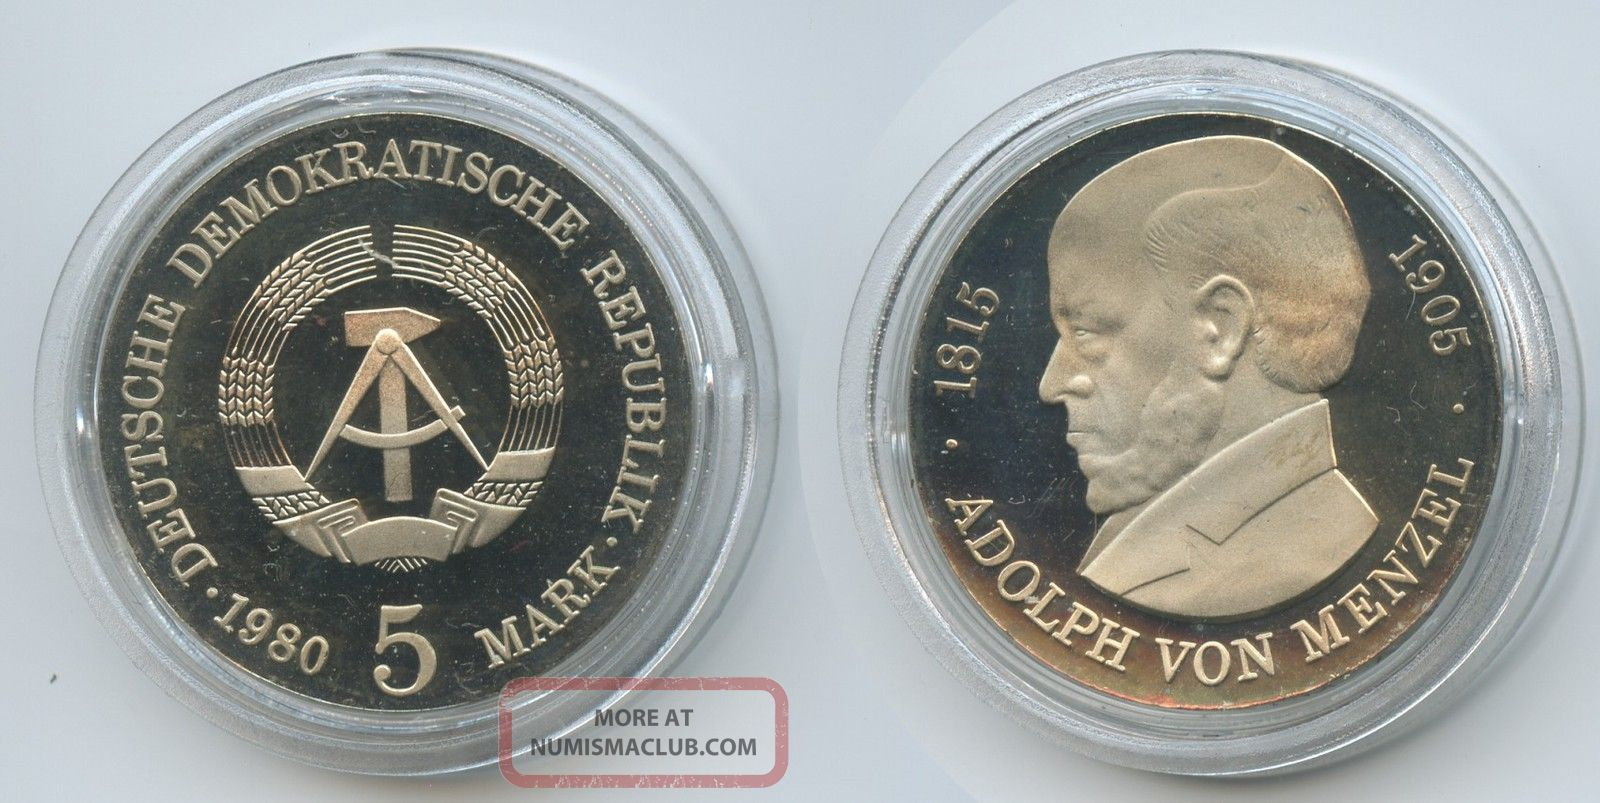 Gx710 - East Germany 5 Mark 1980 Km 76 Proof Adolph Von Menzel Ddr Scarce East Germany (1949-90) photo